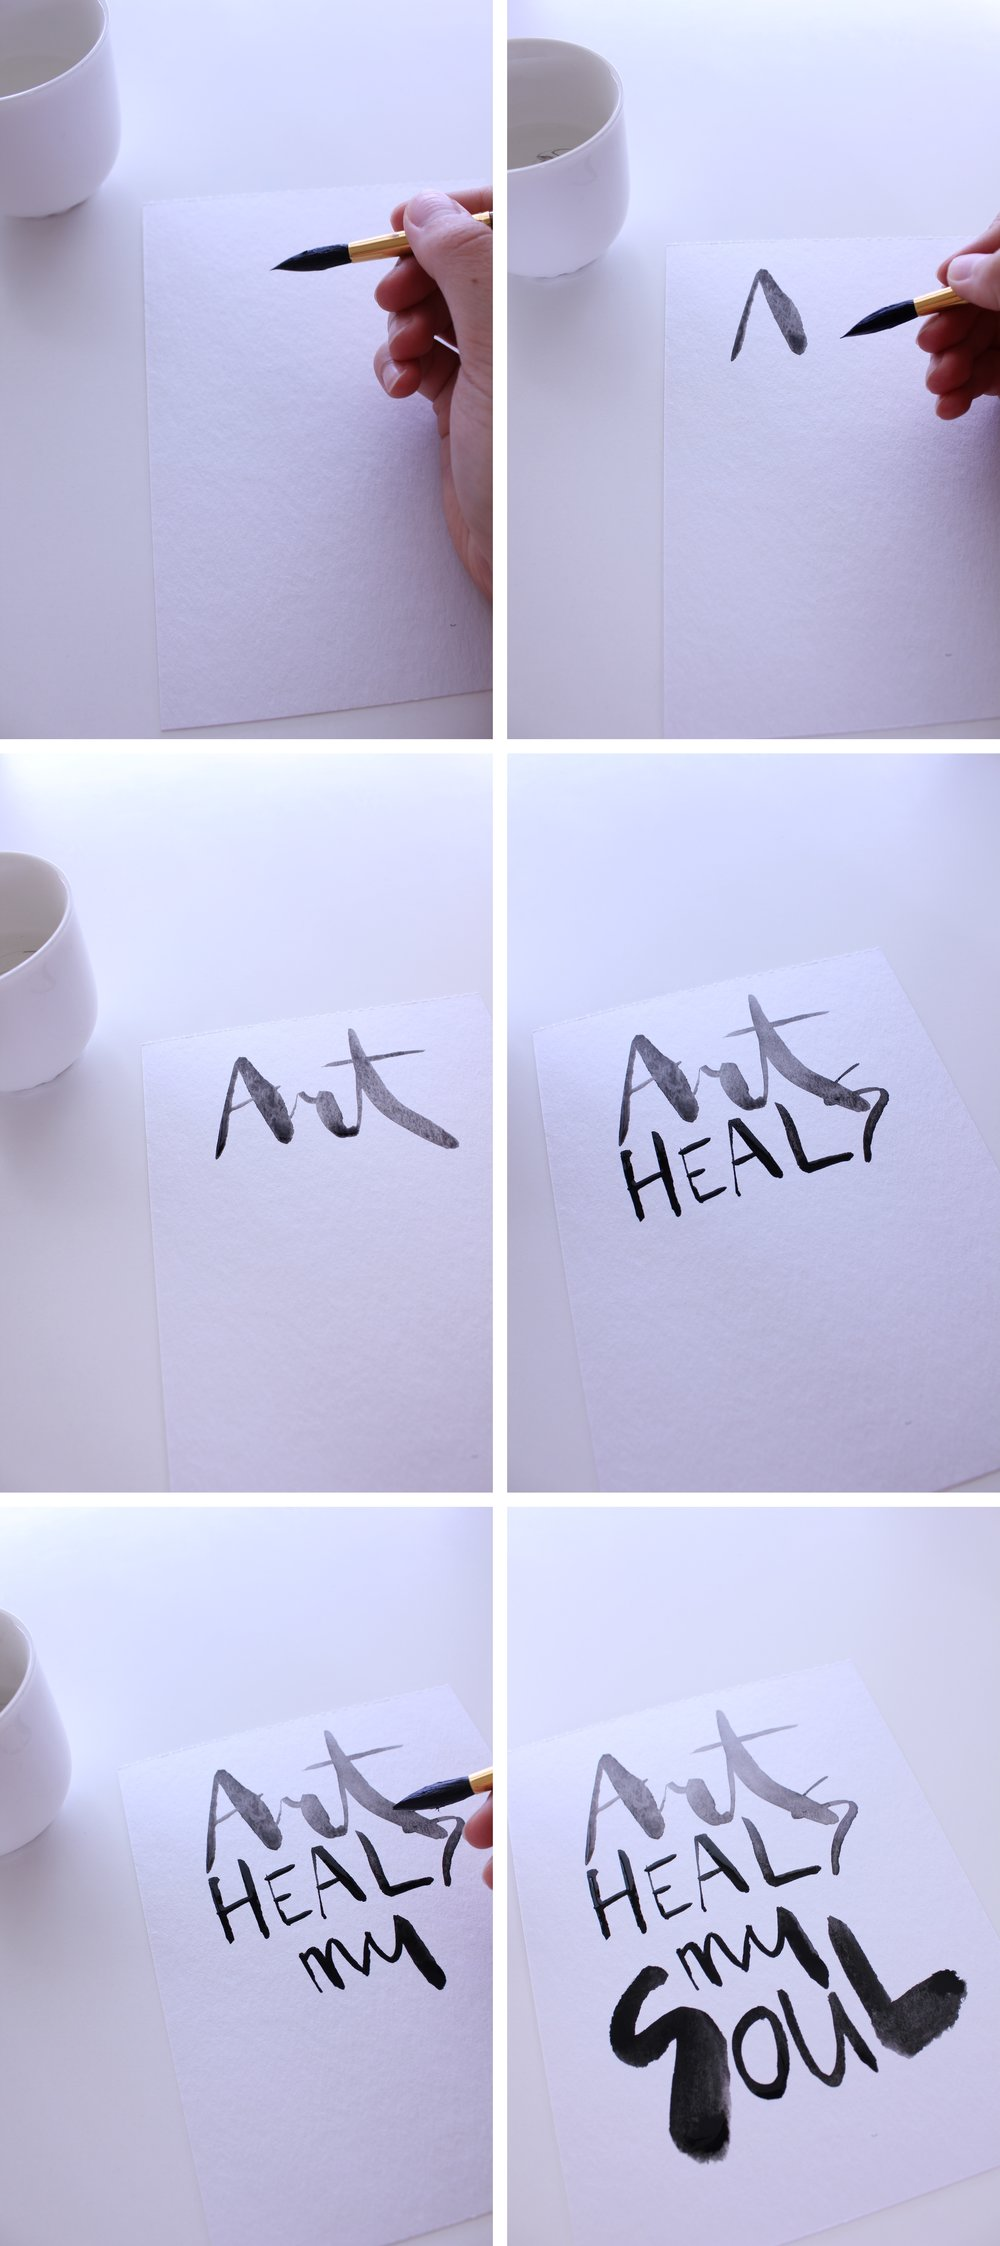 calligraphy illustration